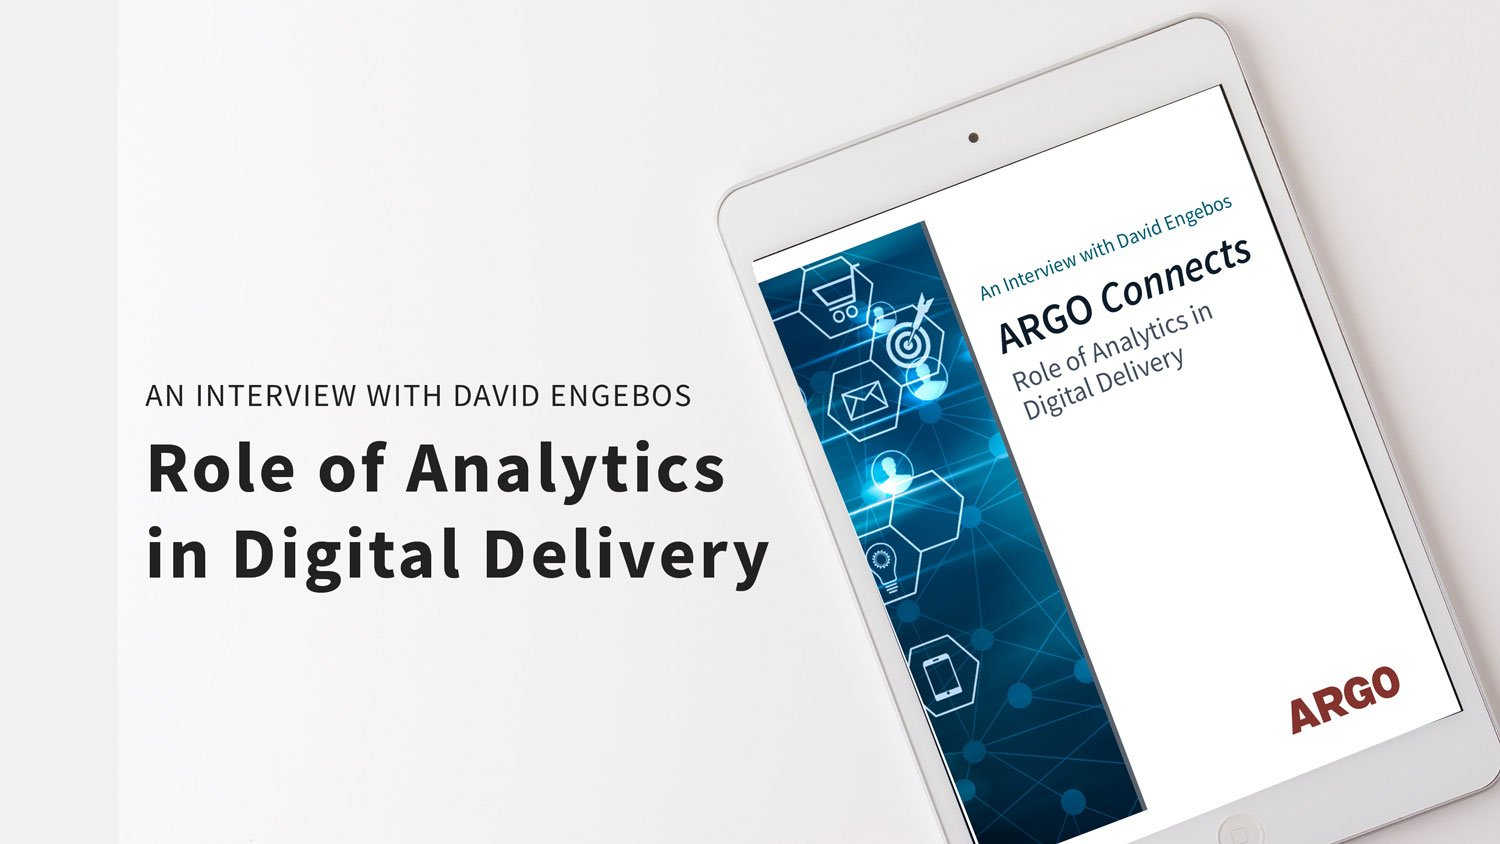 ARGO-connects-2020-role-of-analytics-in-digital-delivery